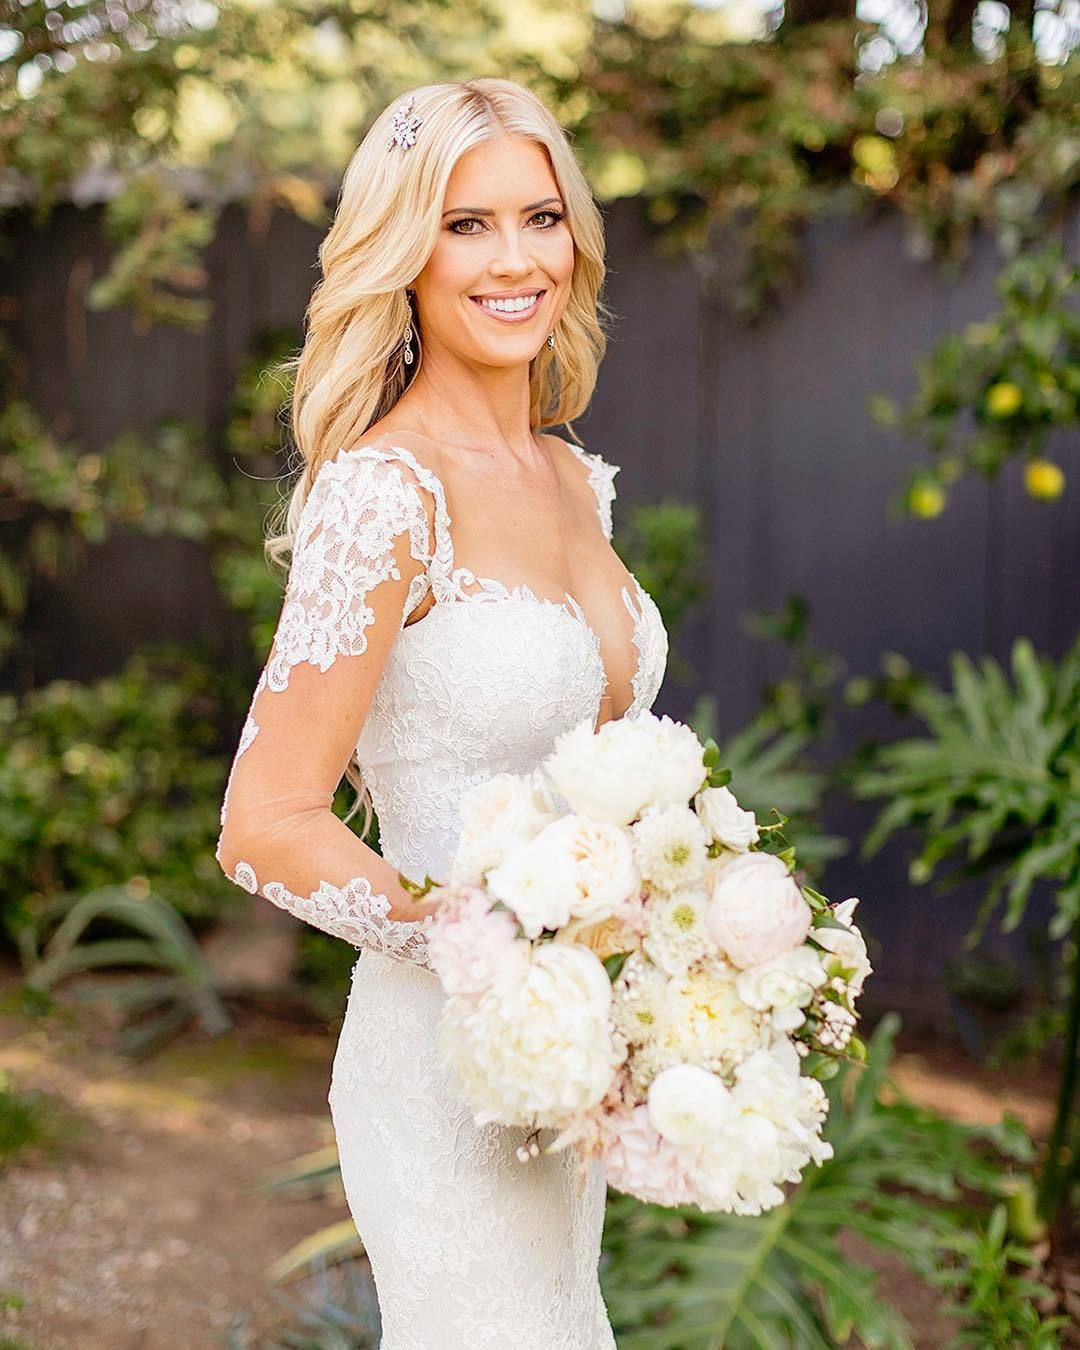 Be Inspired Pr On Instagram Christinaanstead Was Absolutely Glowing On Her Wedding Day And We Can T Help But Love Her Bridal Style That Styledbytc Jennife